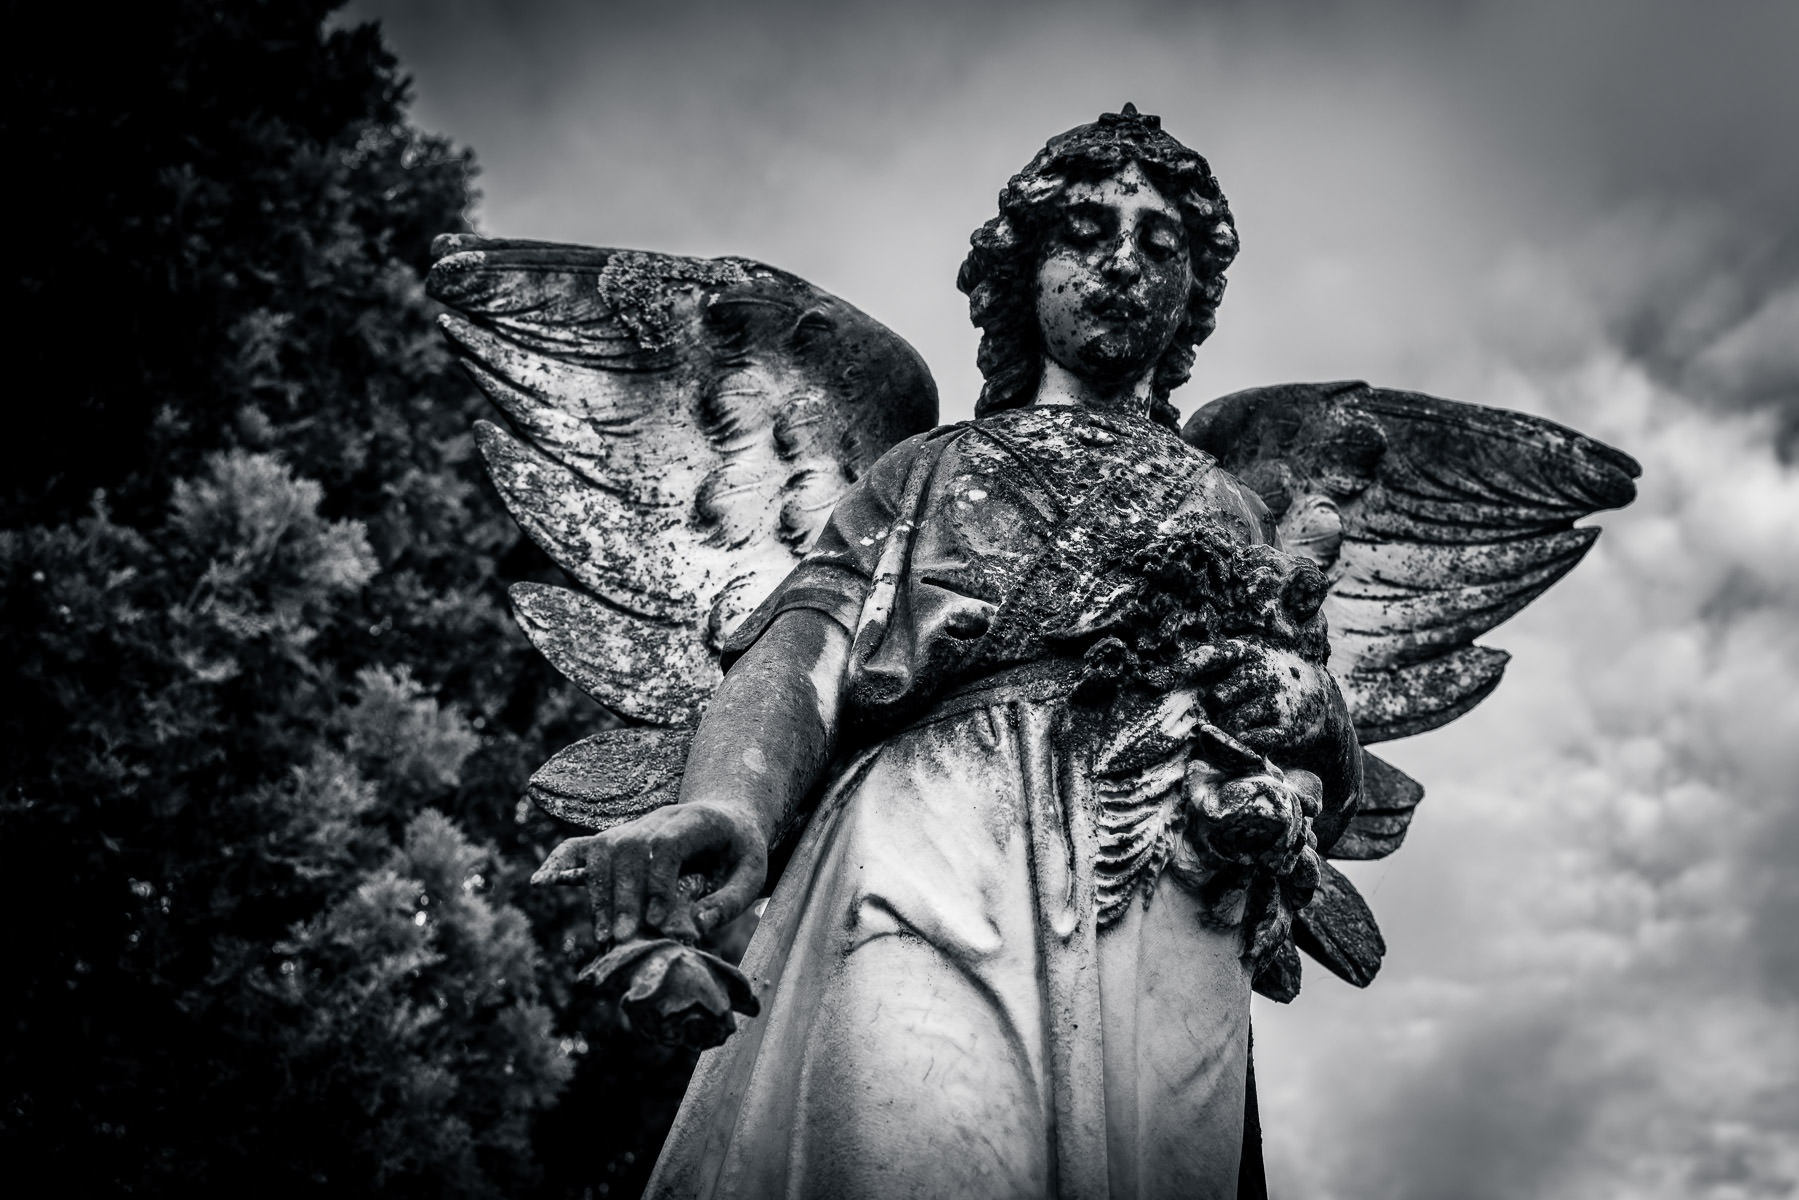 A statue of an angel atop a headstone at Pecan Grove Cemetery, McKinney, Texas.